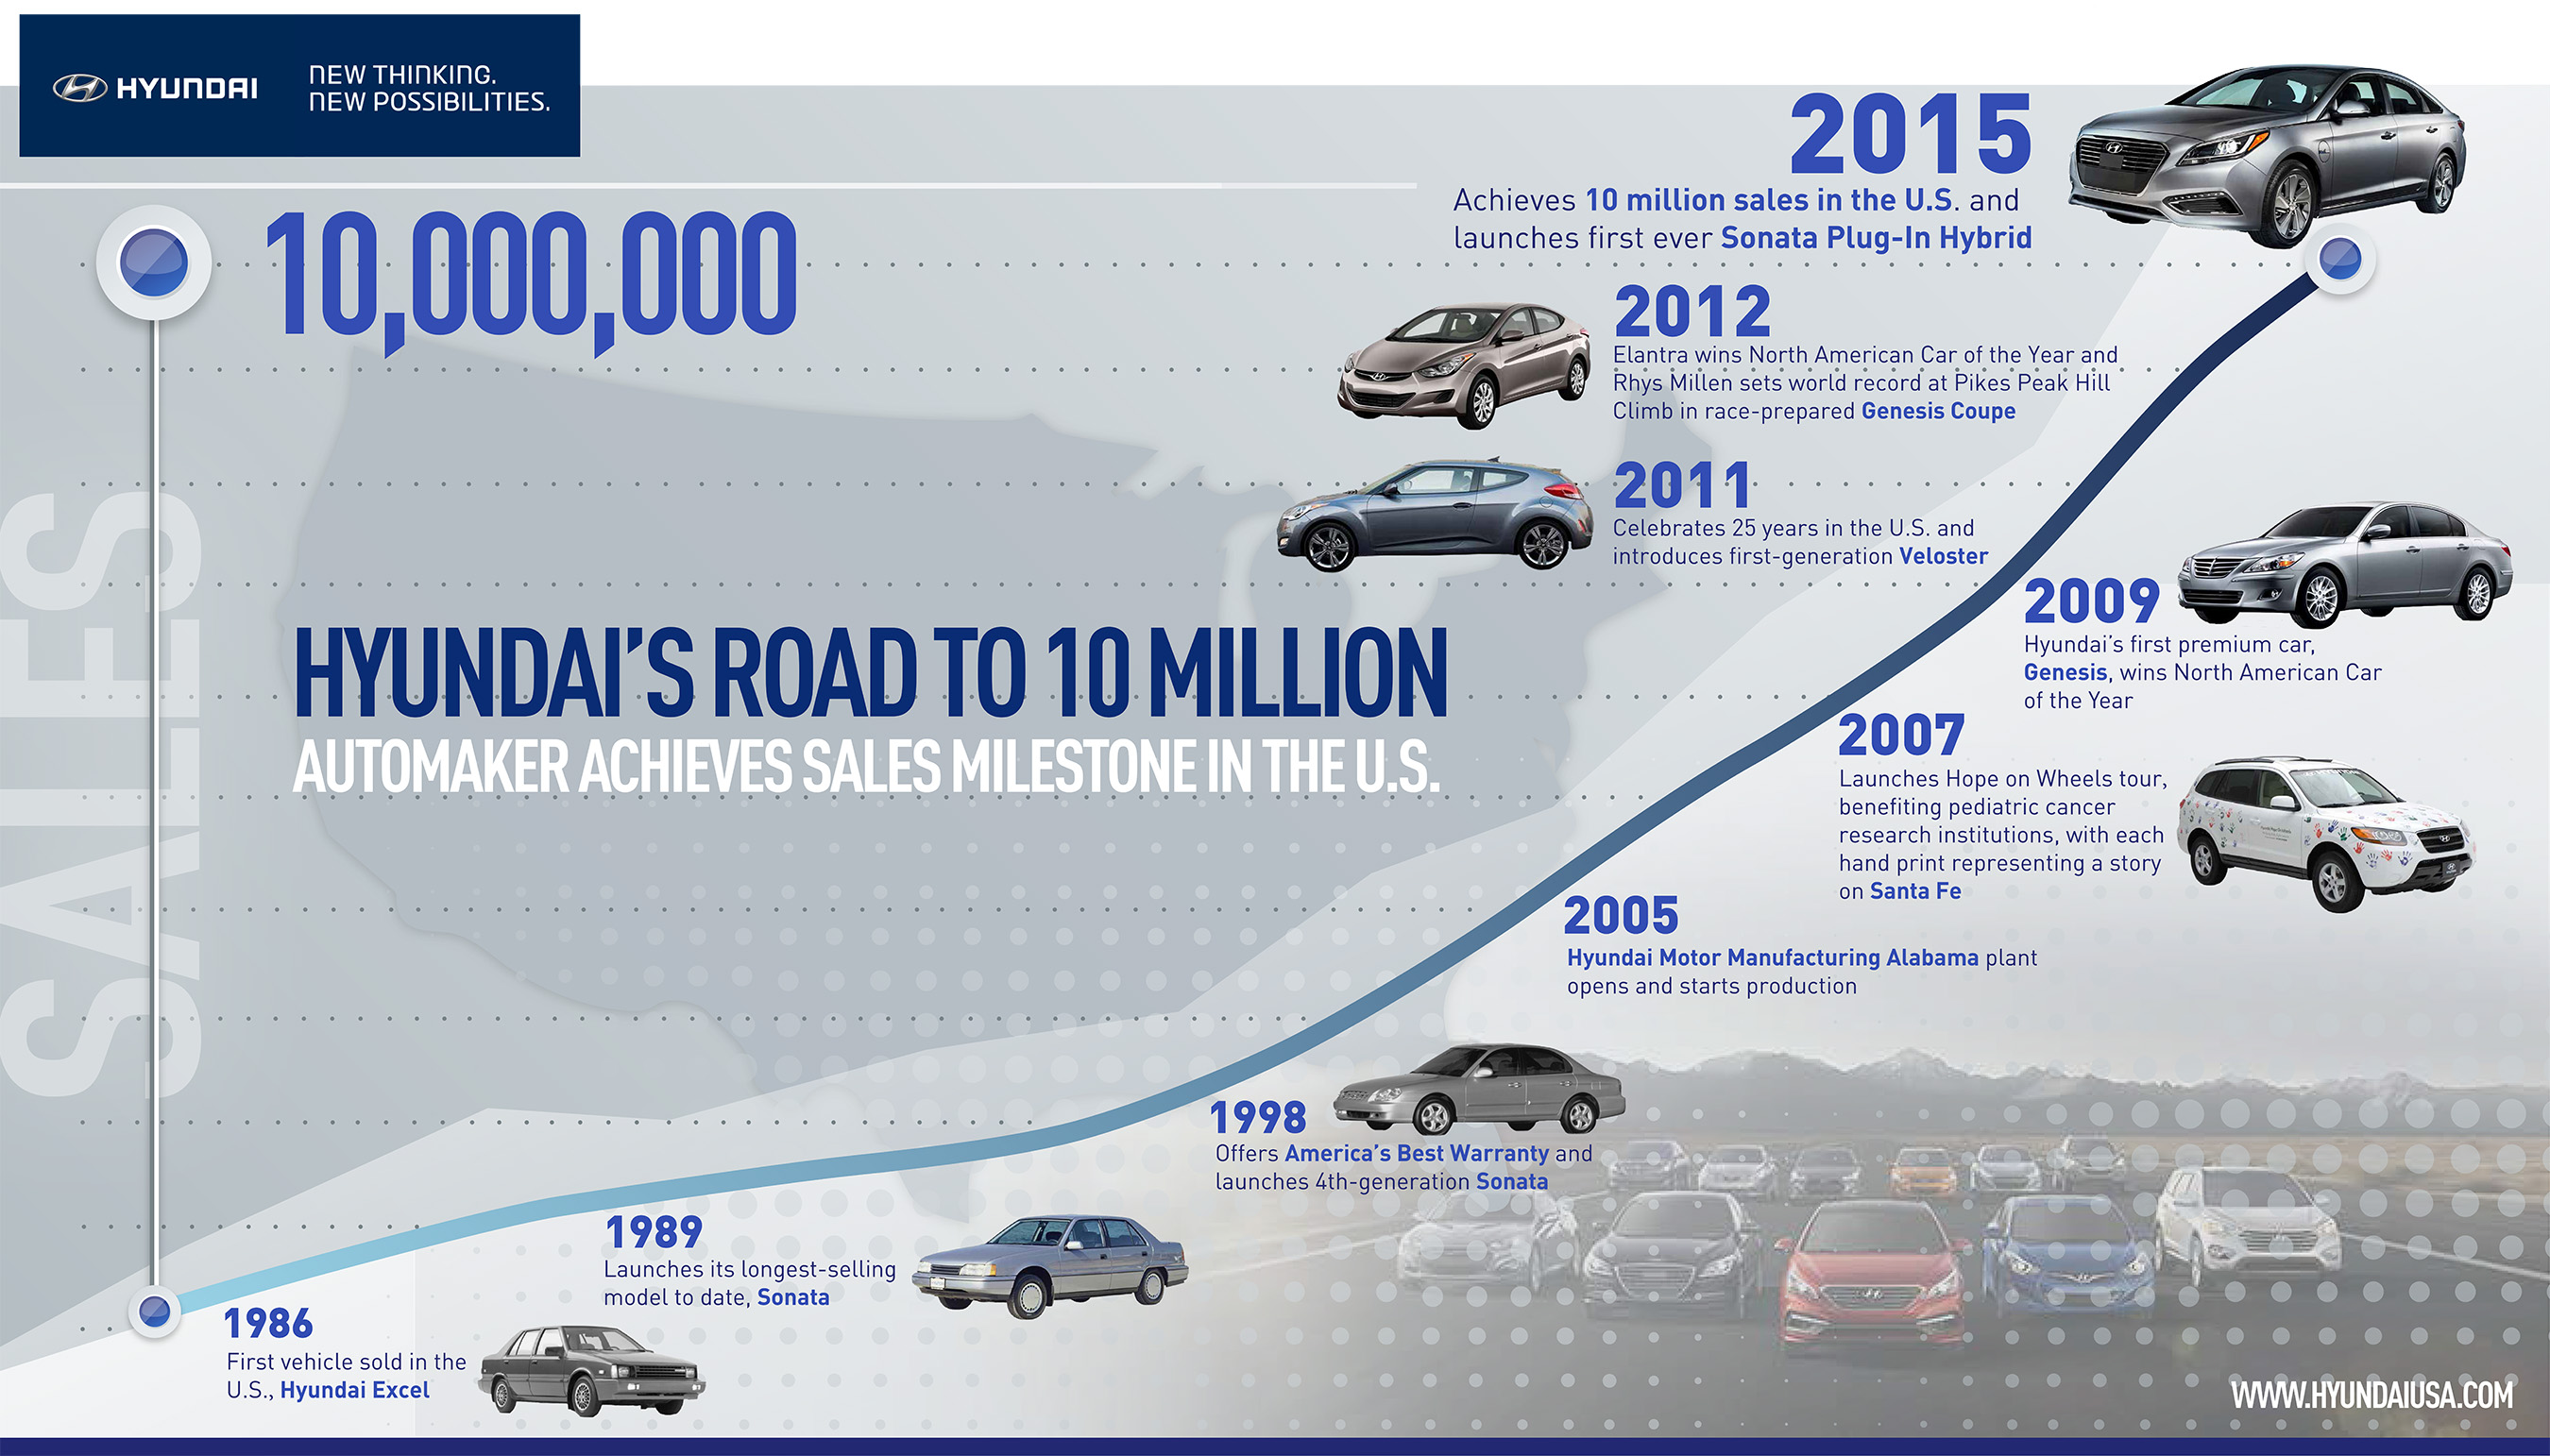 Automaker Achieves Sales Milestone in the U.S.